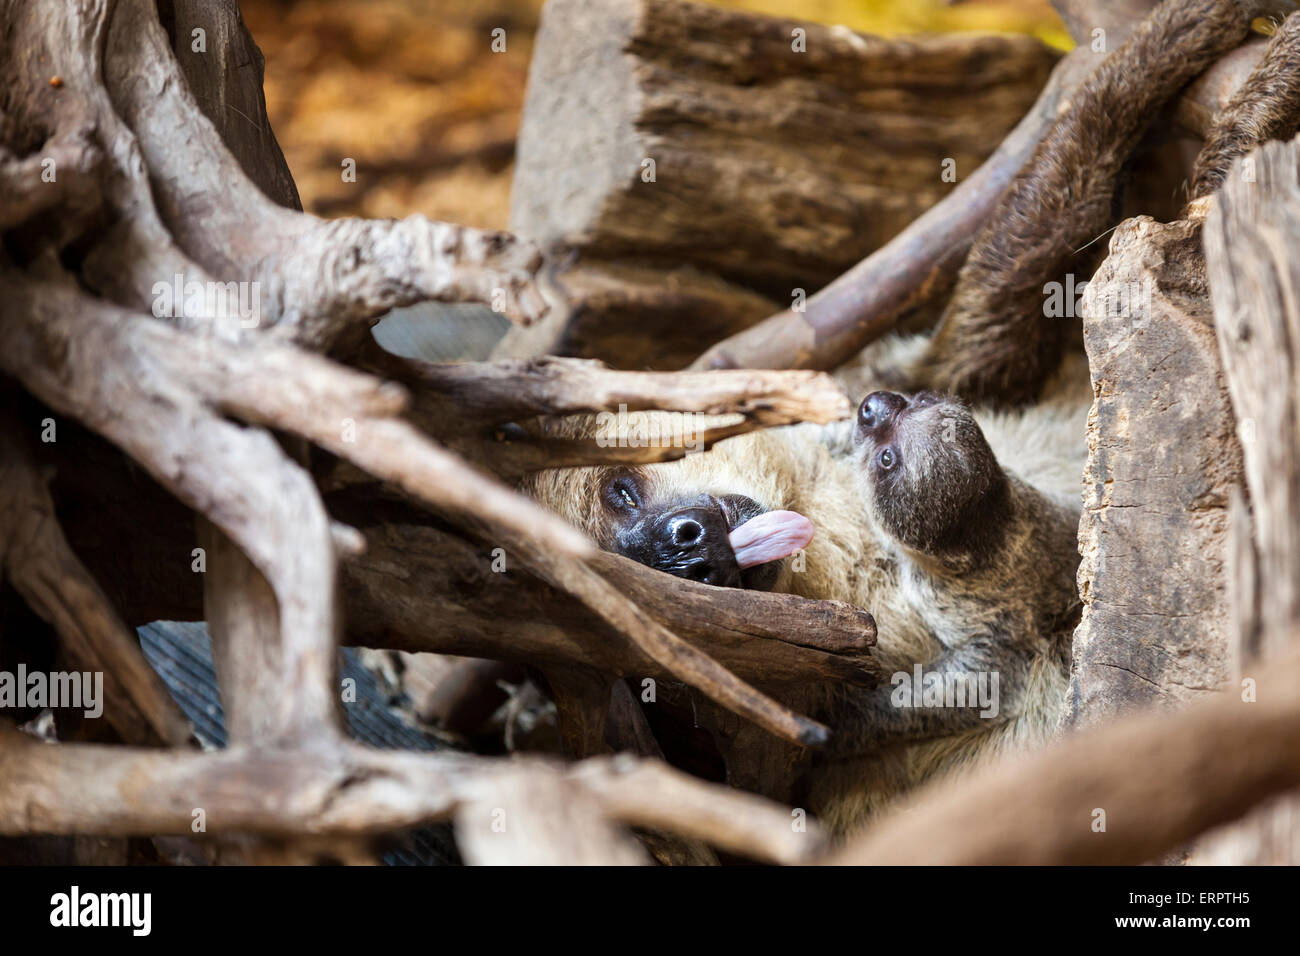 ZSL London Zoo, London, 6th June 2015.The new two-toed sloth baby, a few days old and as yet unnamed, clings to - Stock Image